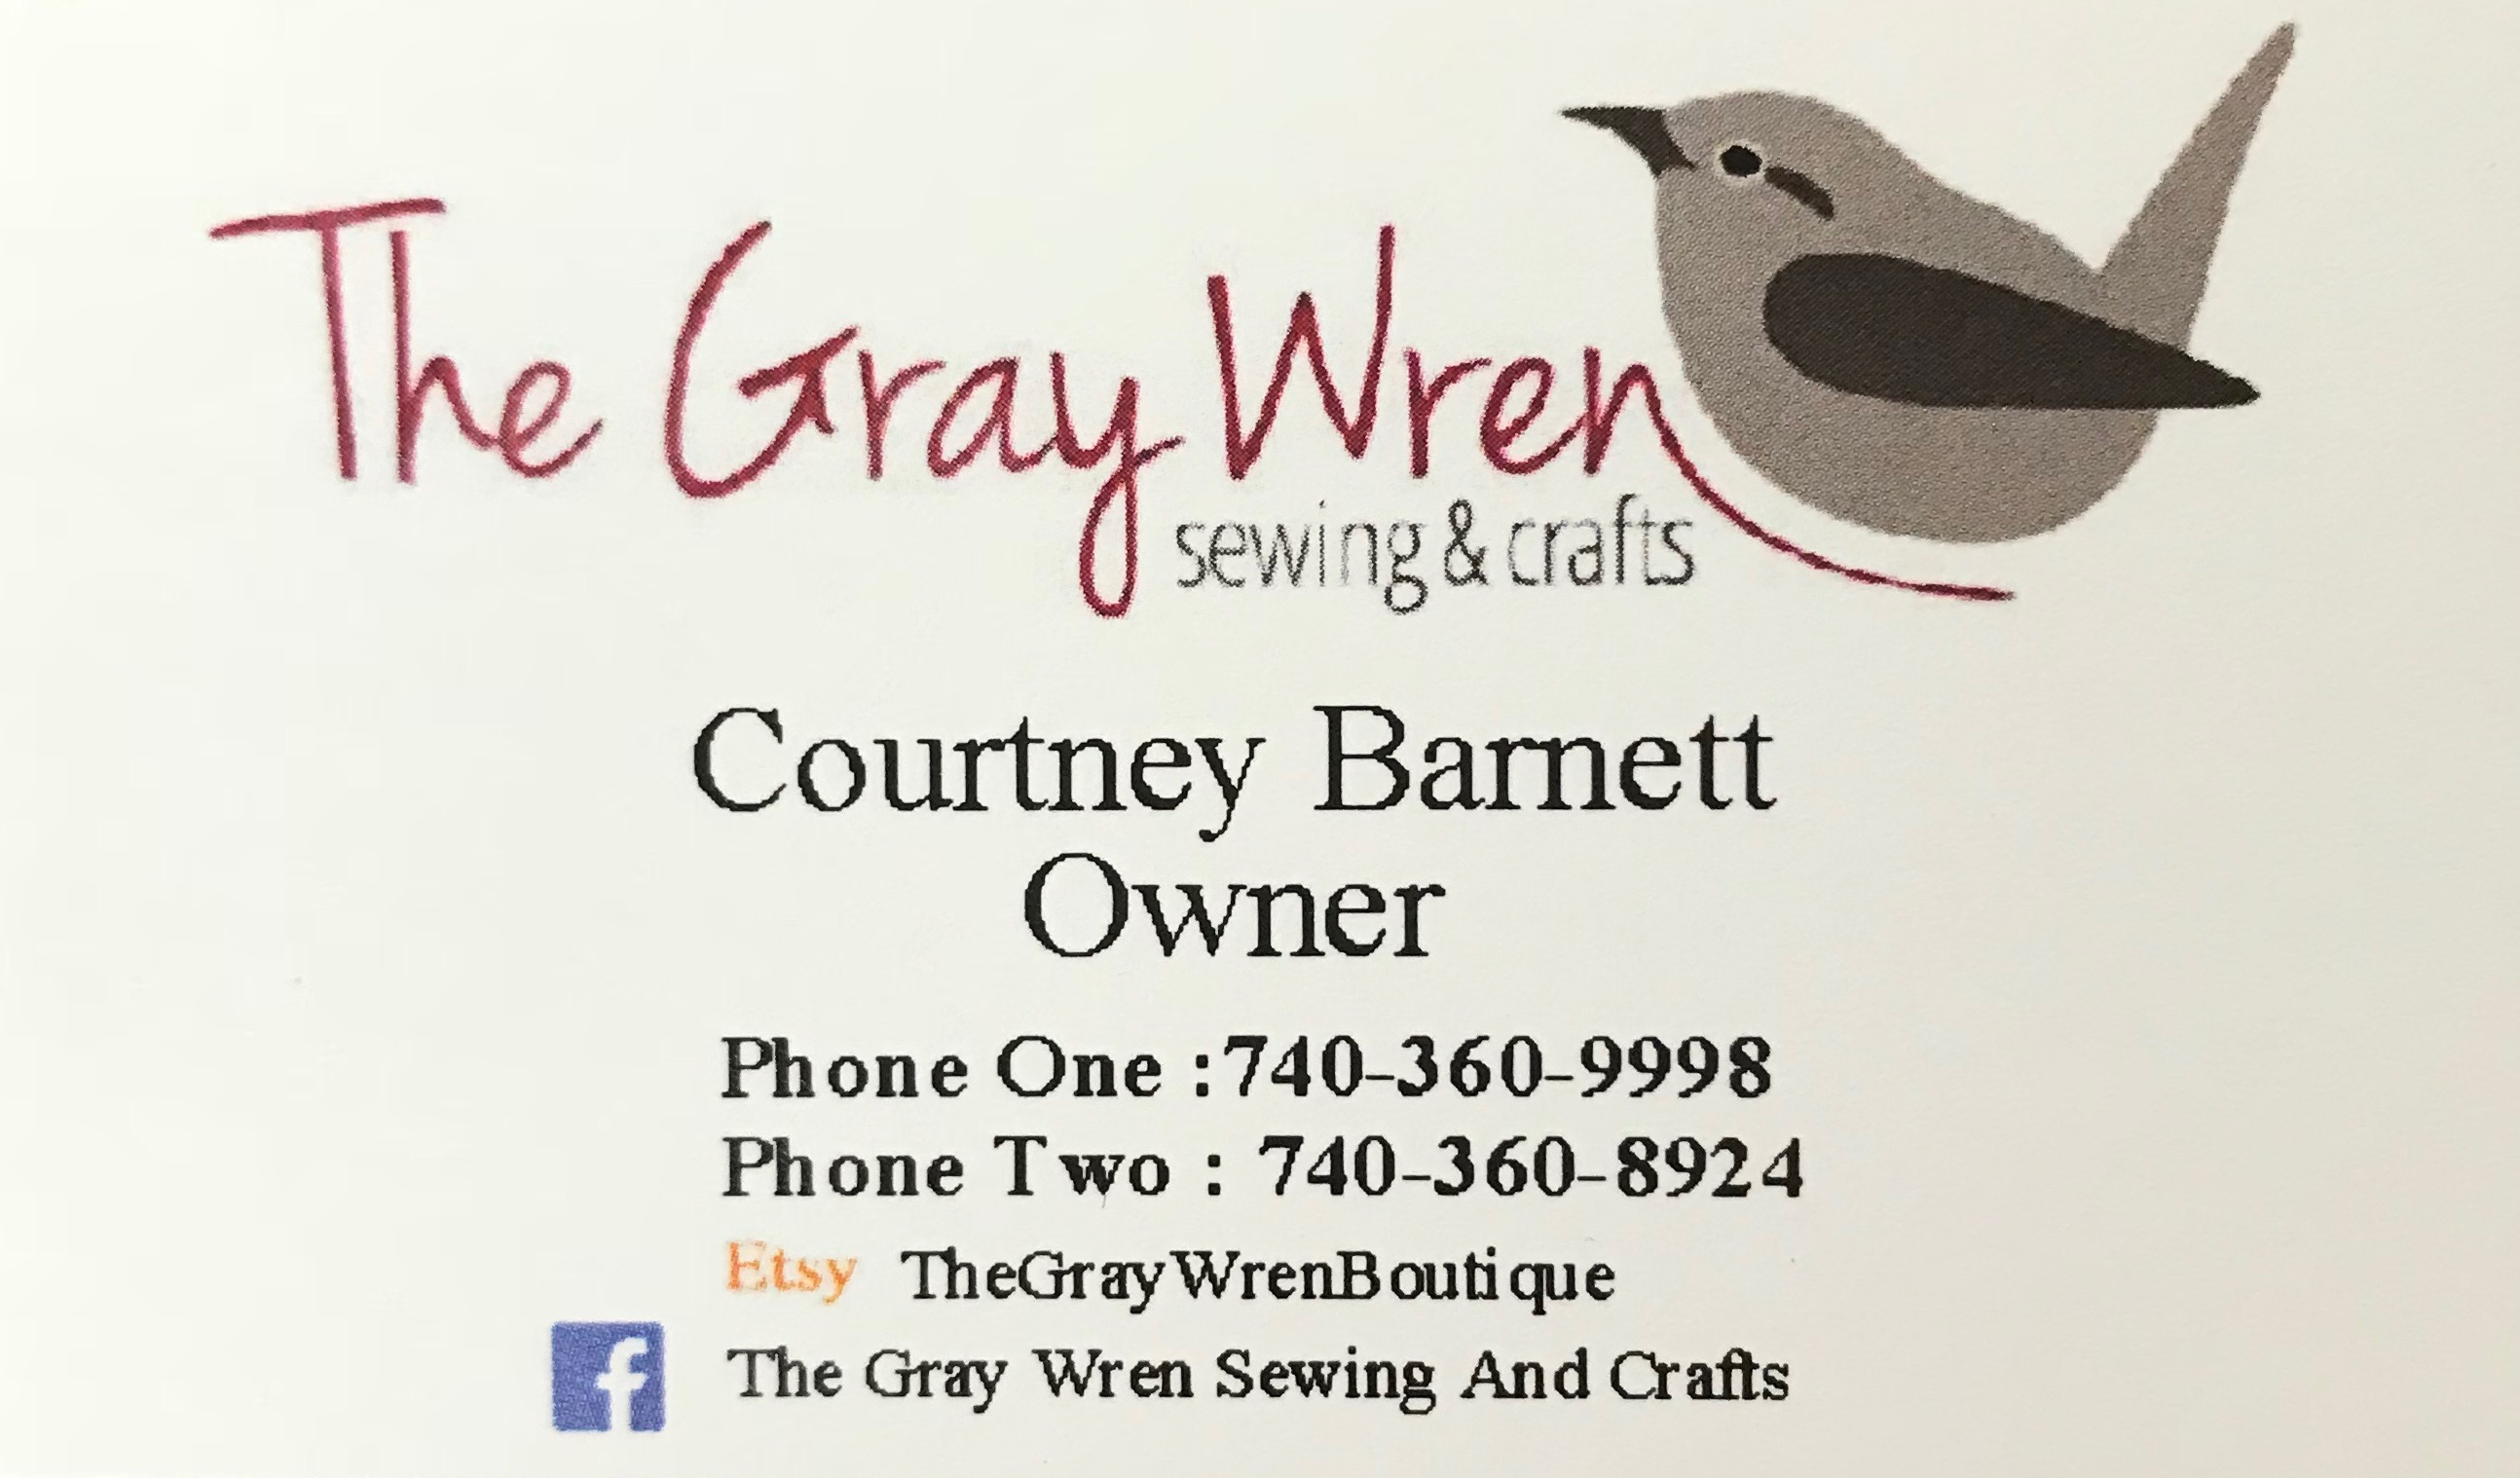 The Gray Wren